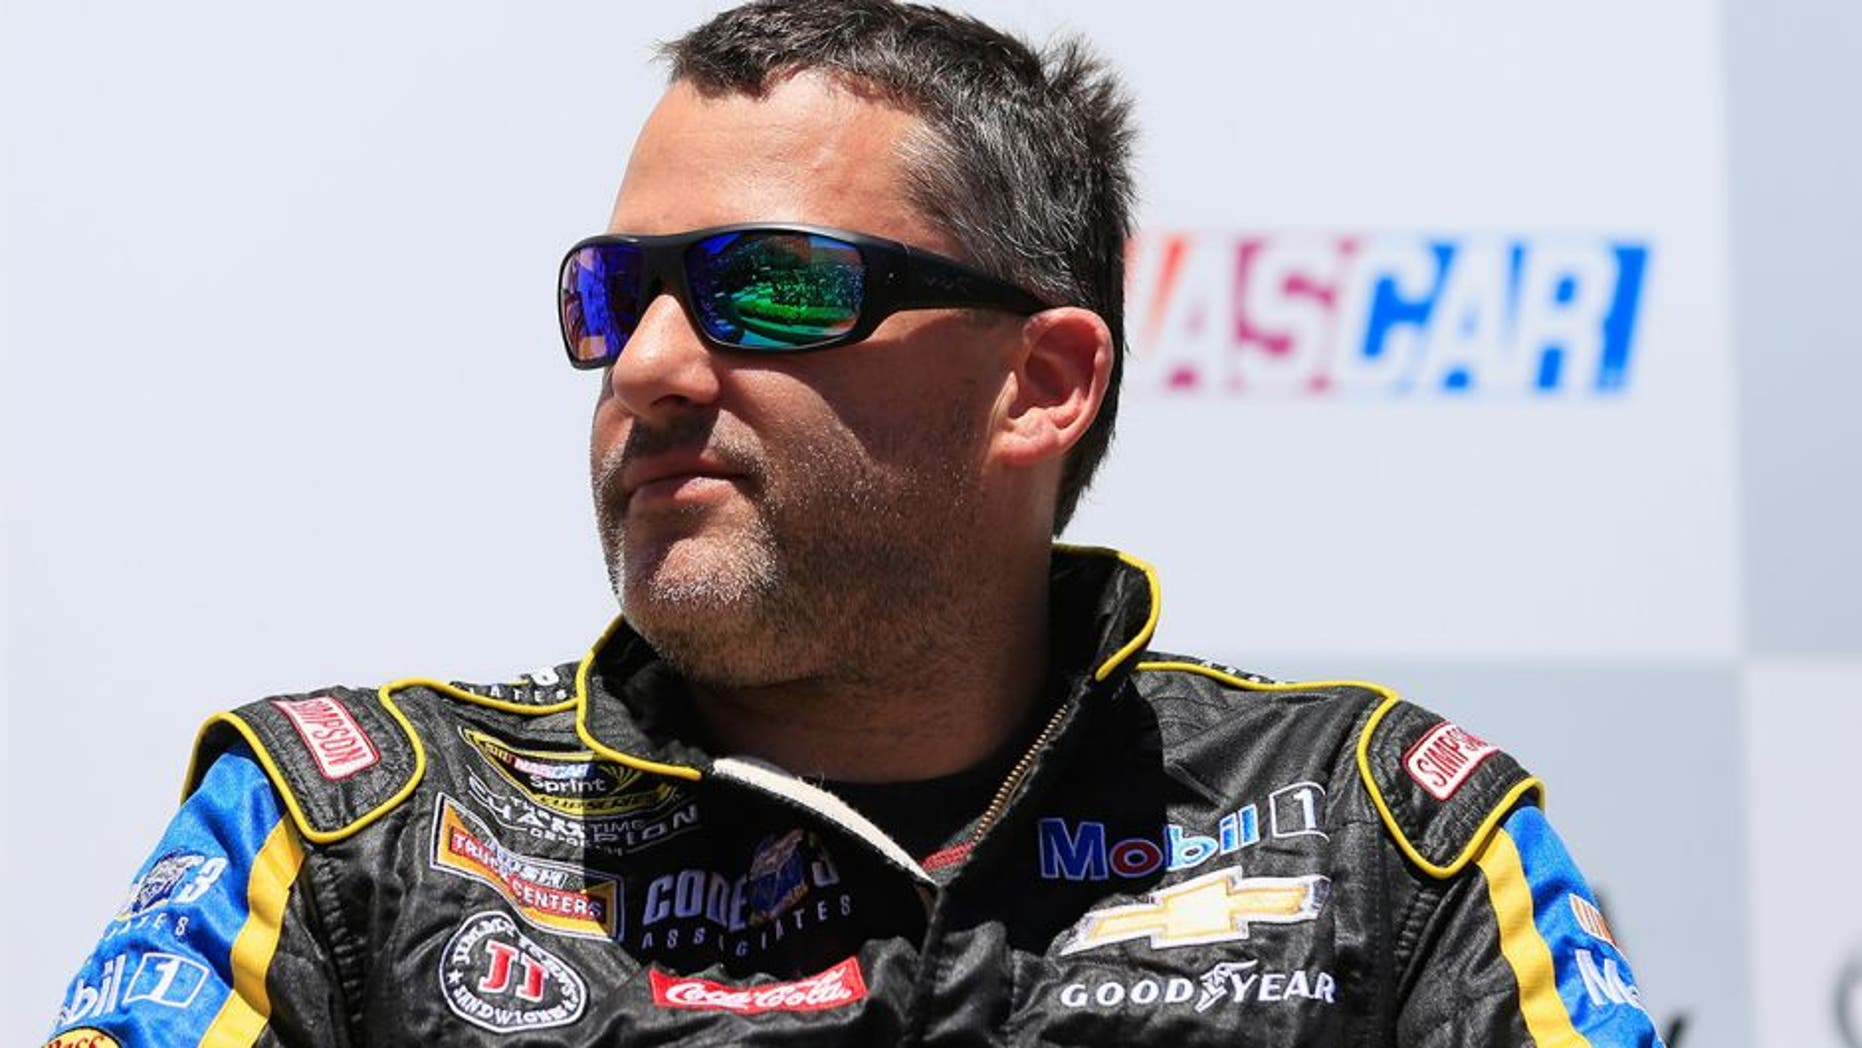 SONOMA, CA - JUNE 24: Tony Stewart, driver of the #14 Code 3 Assoc/Mobil 1 Chevrolet, is inducted into the Sonoma Raceway Wall Of Fame after practice for the NASCAR Sprint Cup Series Toyota/Save Mart 350 at Sonoma Raceway on June 24, 2016 in Sonoma, California. (Photo by Chris Trotman/NASCAR via Getty Images)